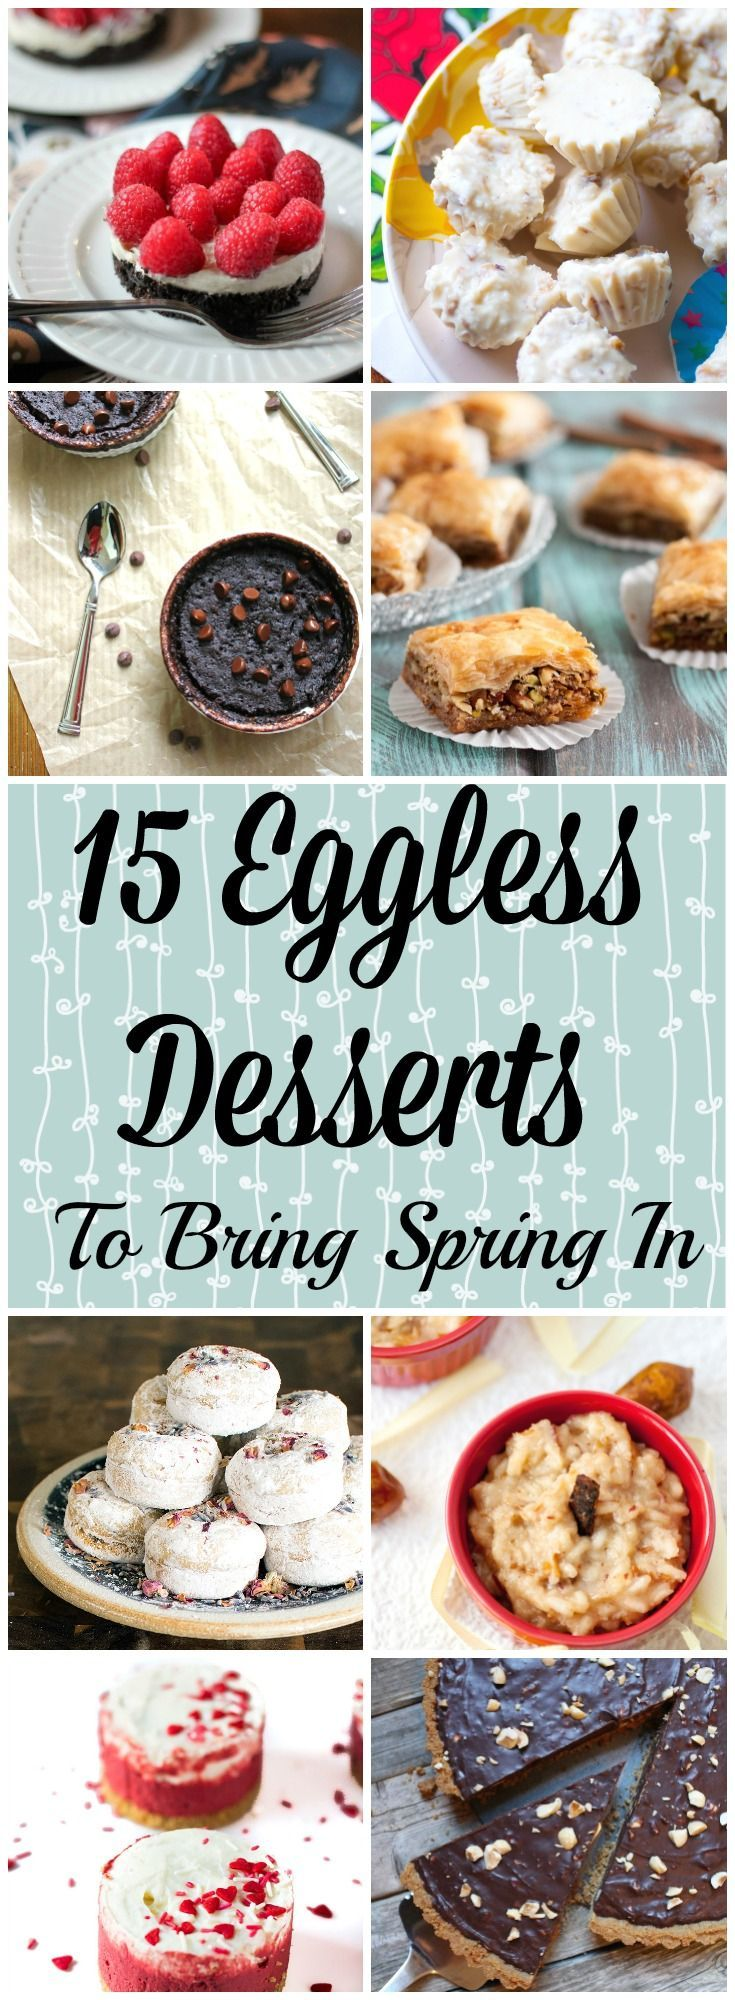 39 best recipes images on Pinterest | Clean eating meals, Cooker ...